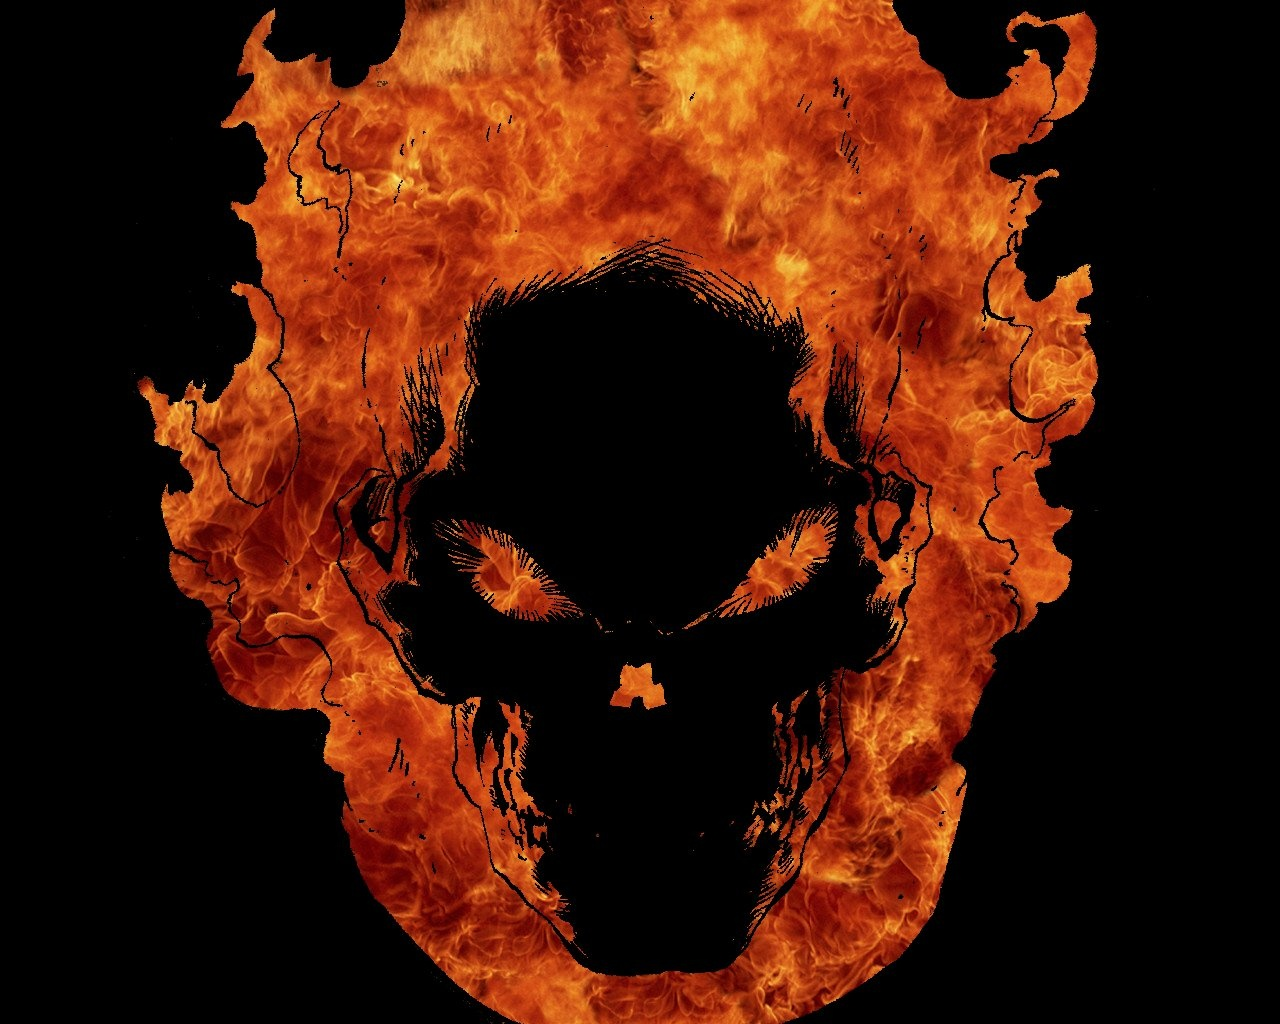 Android Phones Wallpapers Android Wallpaper Skull In Fire 1280x1024